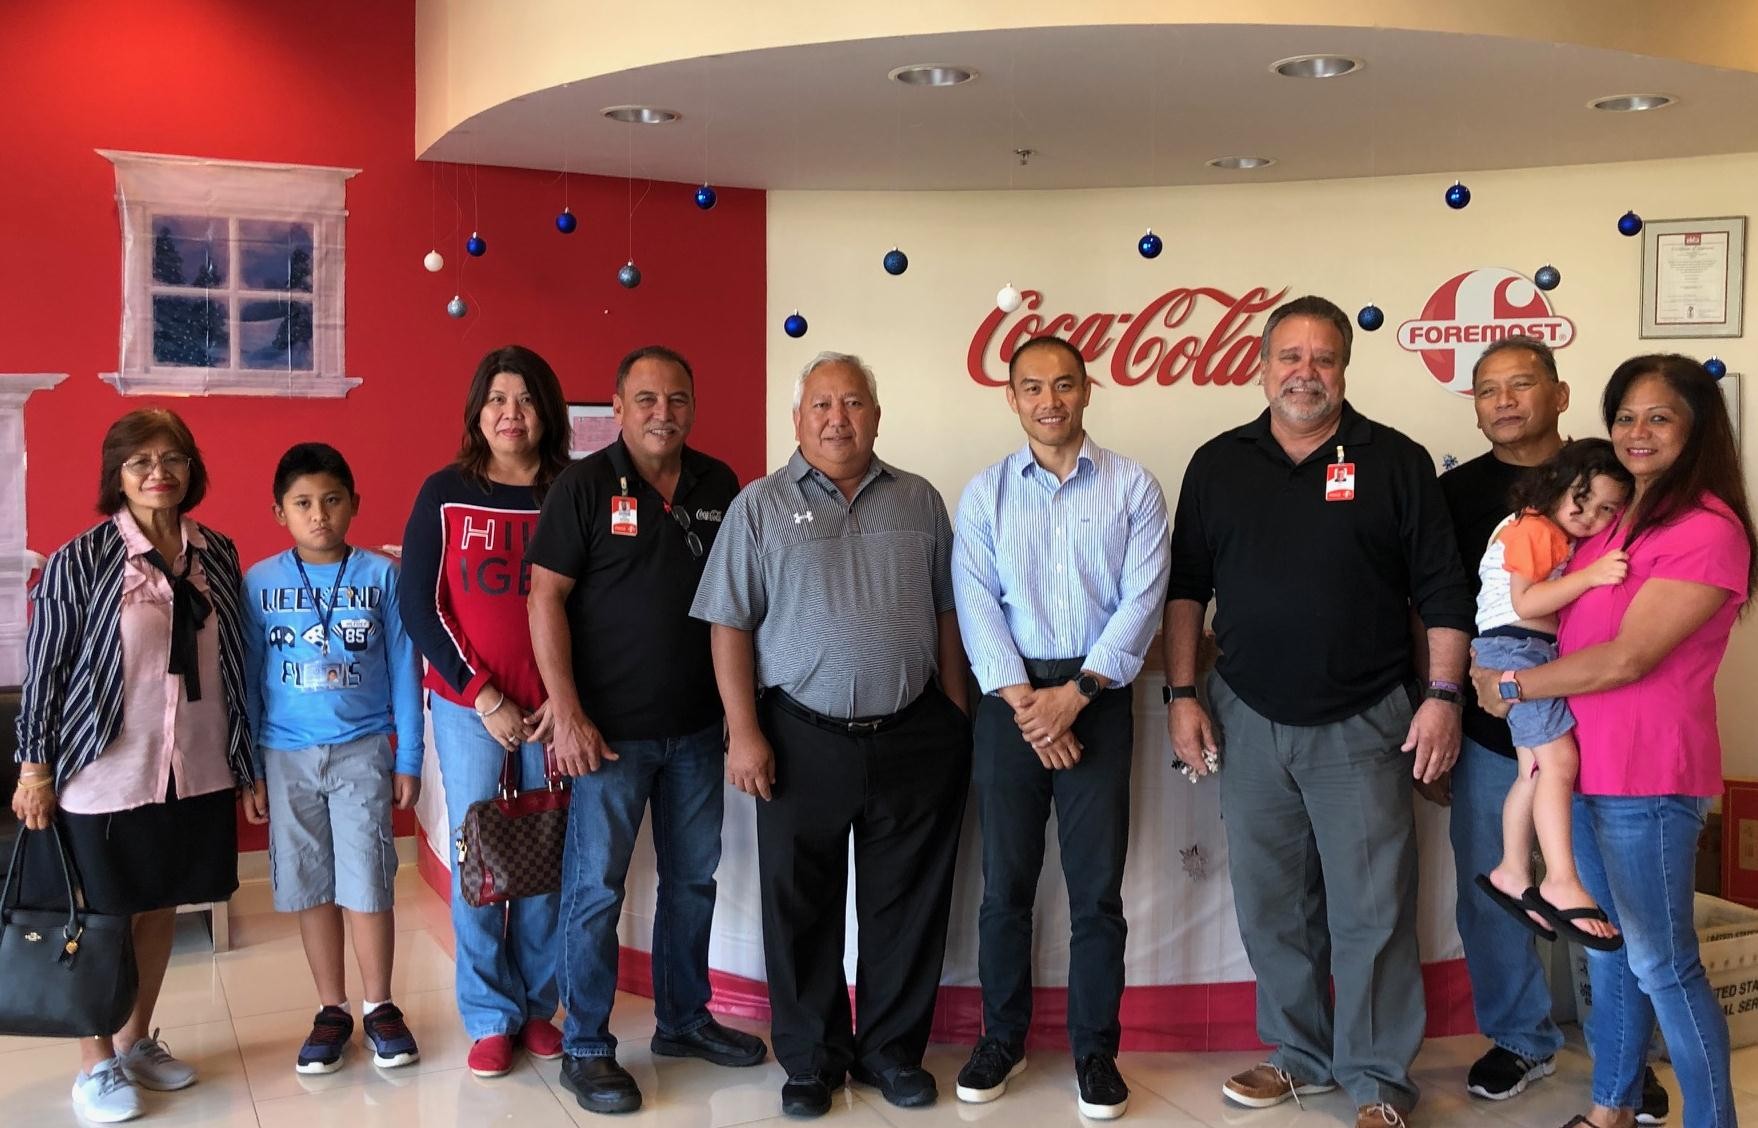 Coca-Cola gives away over <br>$12,000 in cash and prizes